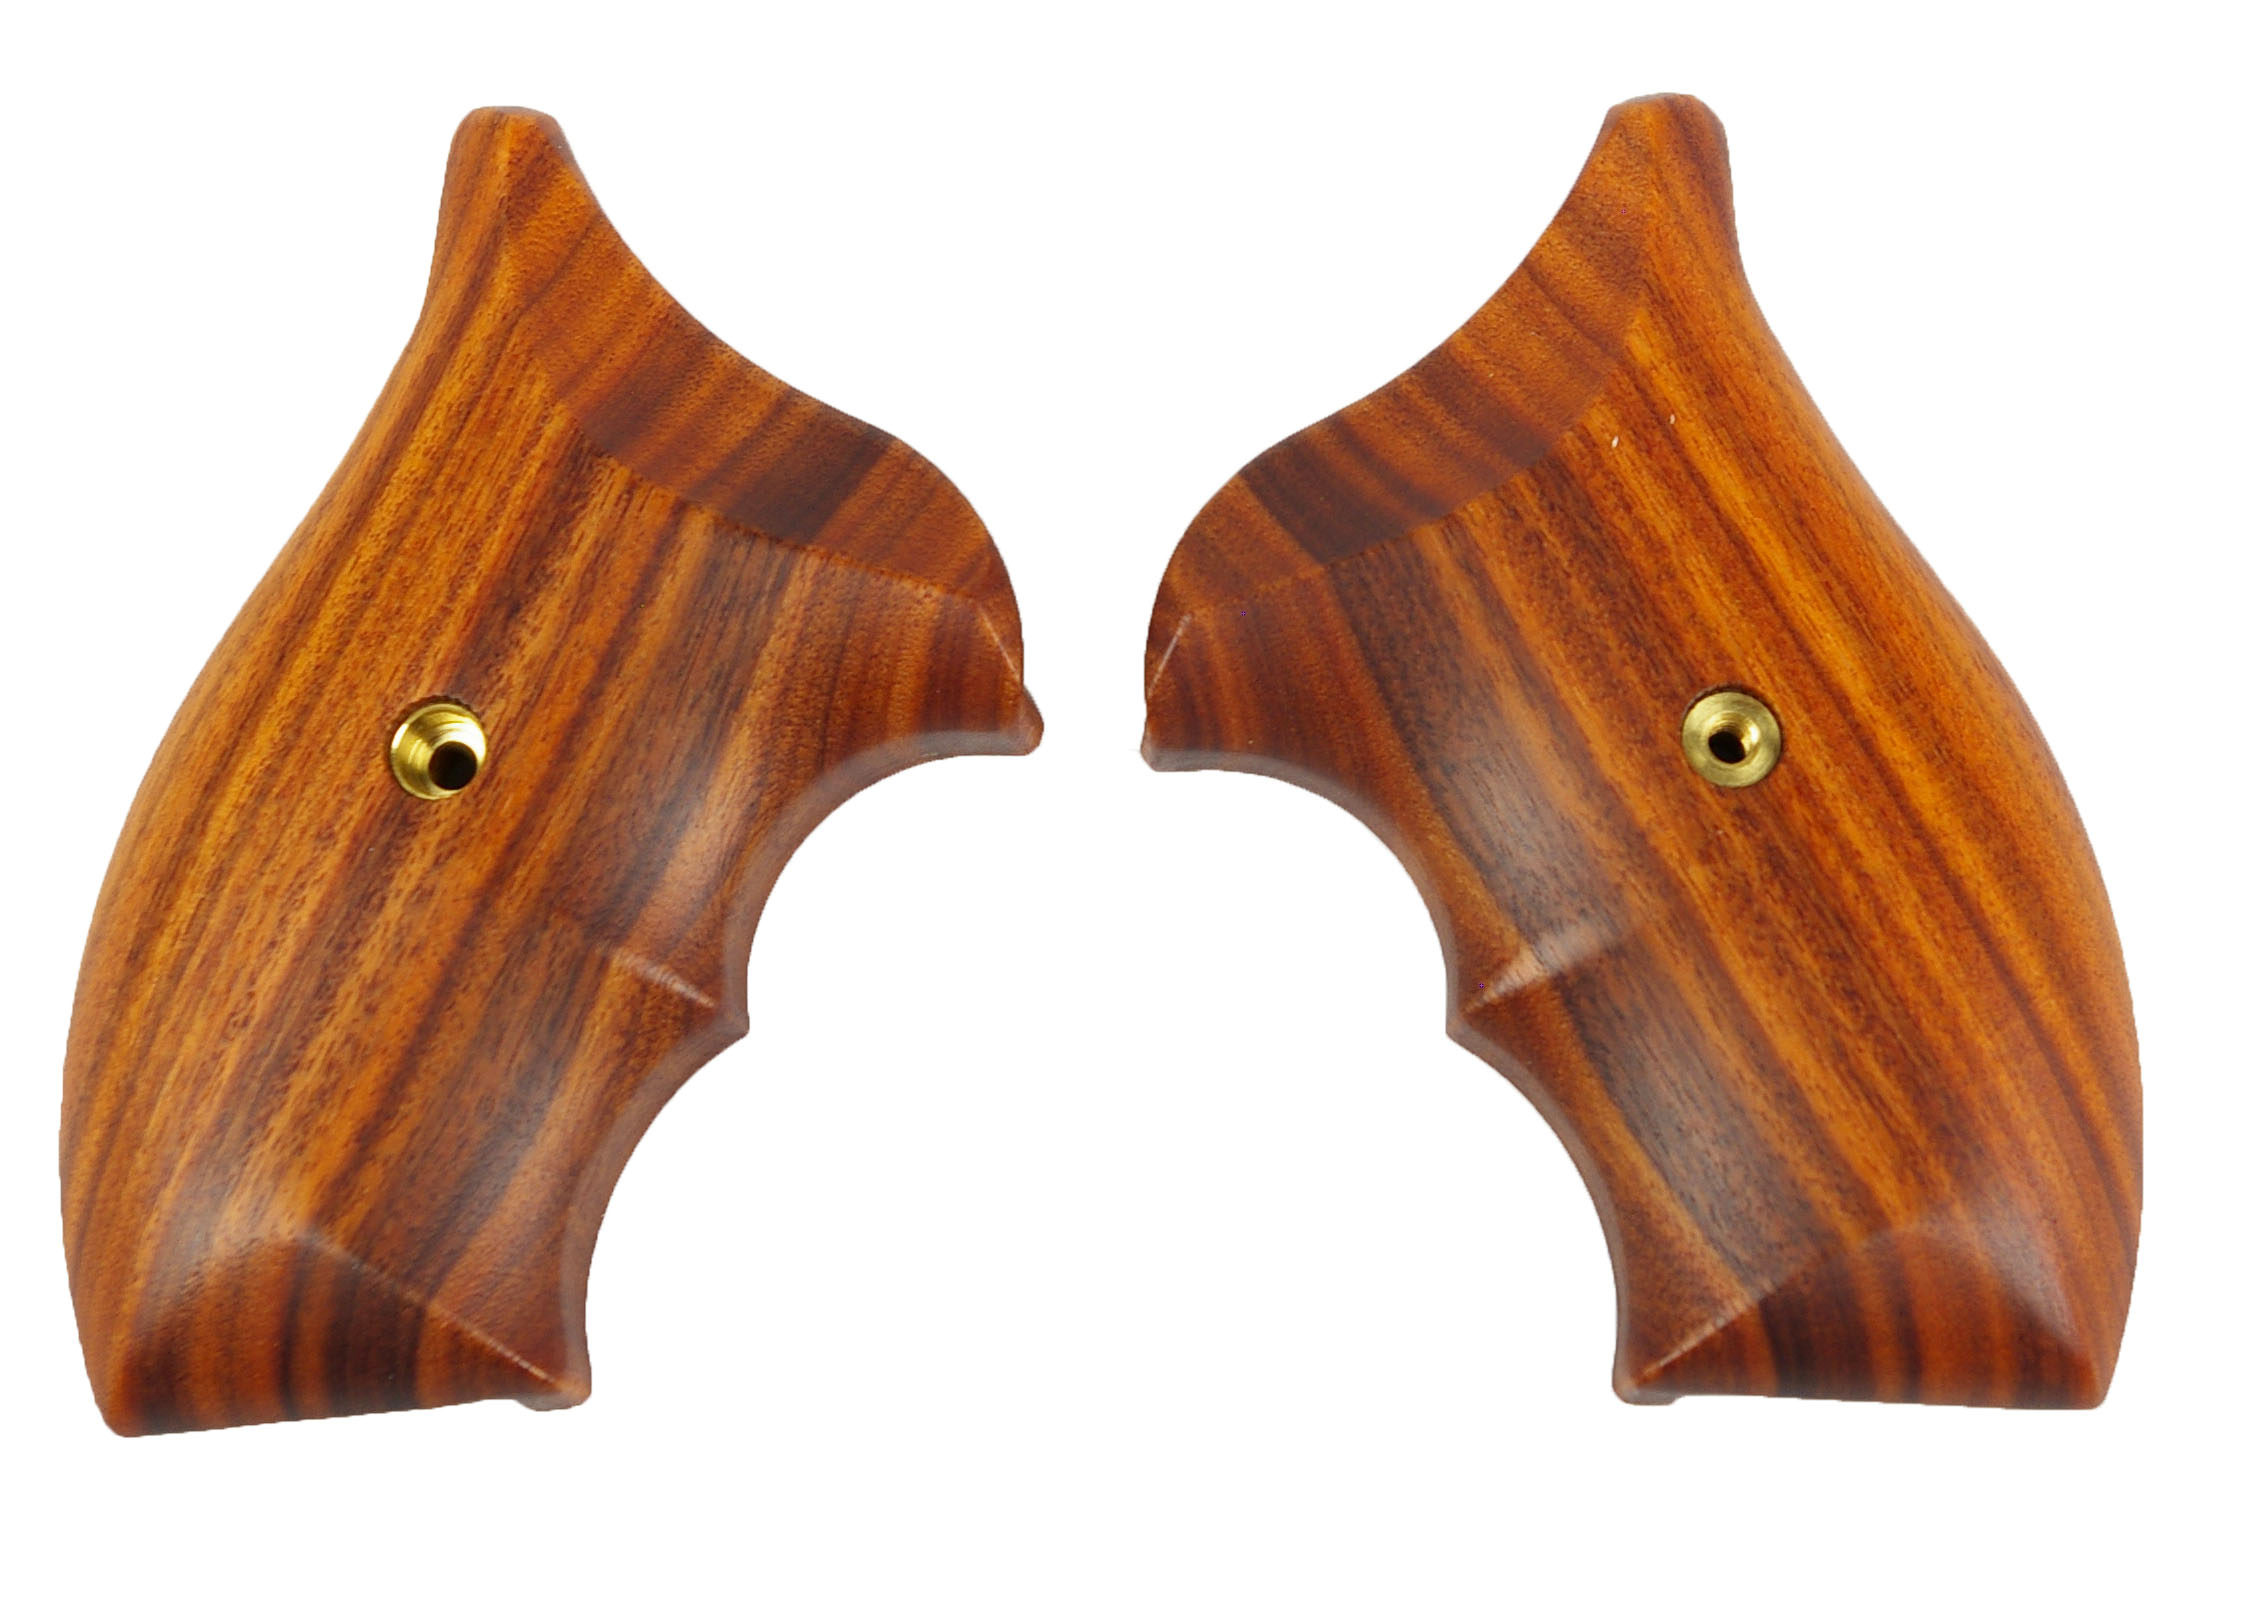 Ahrends S&W, J Frame, RD Butt, Moradillo - Finger Groove - BOOT GRIP - OILED